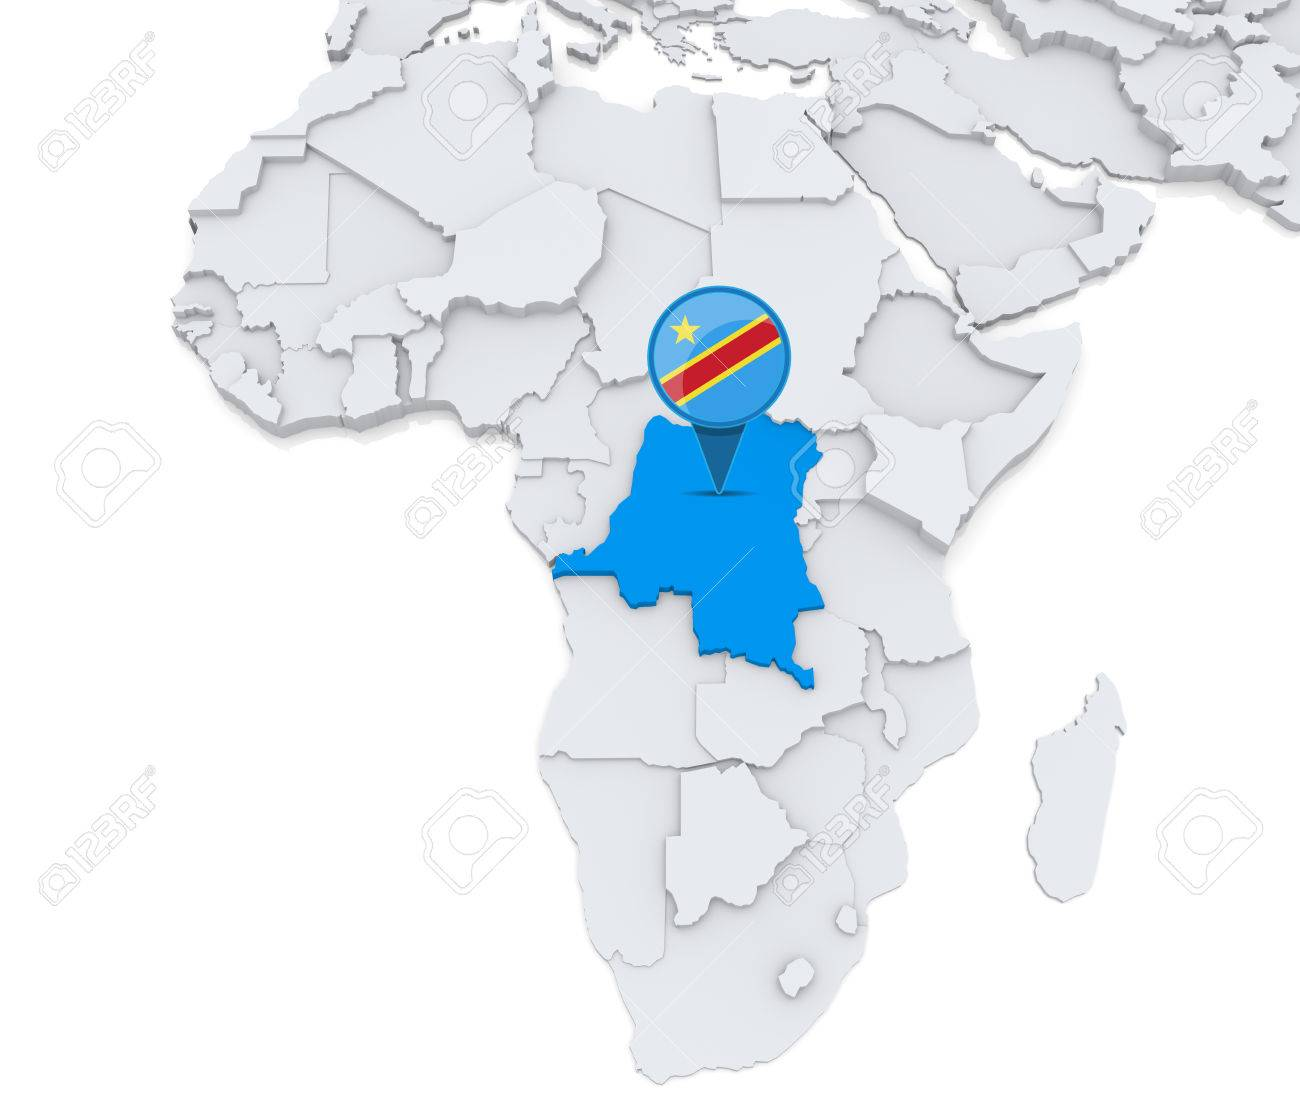 Highlighted Democratic republic of Congo on map of Africa with